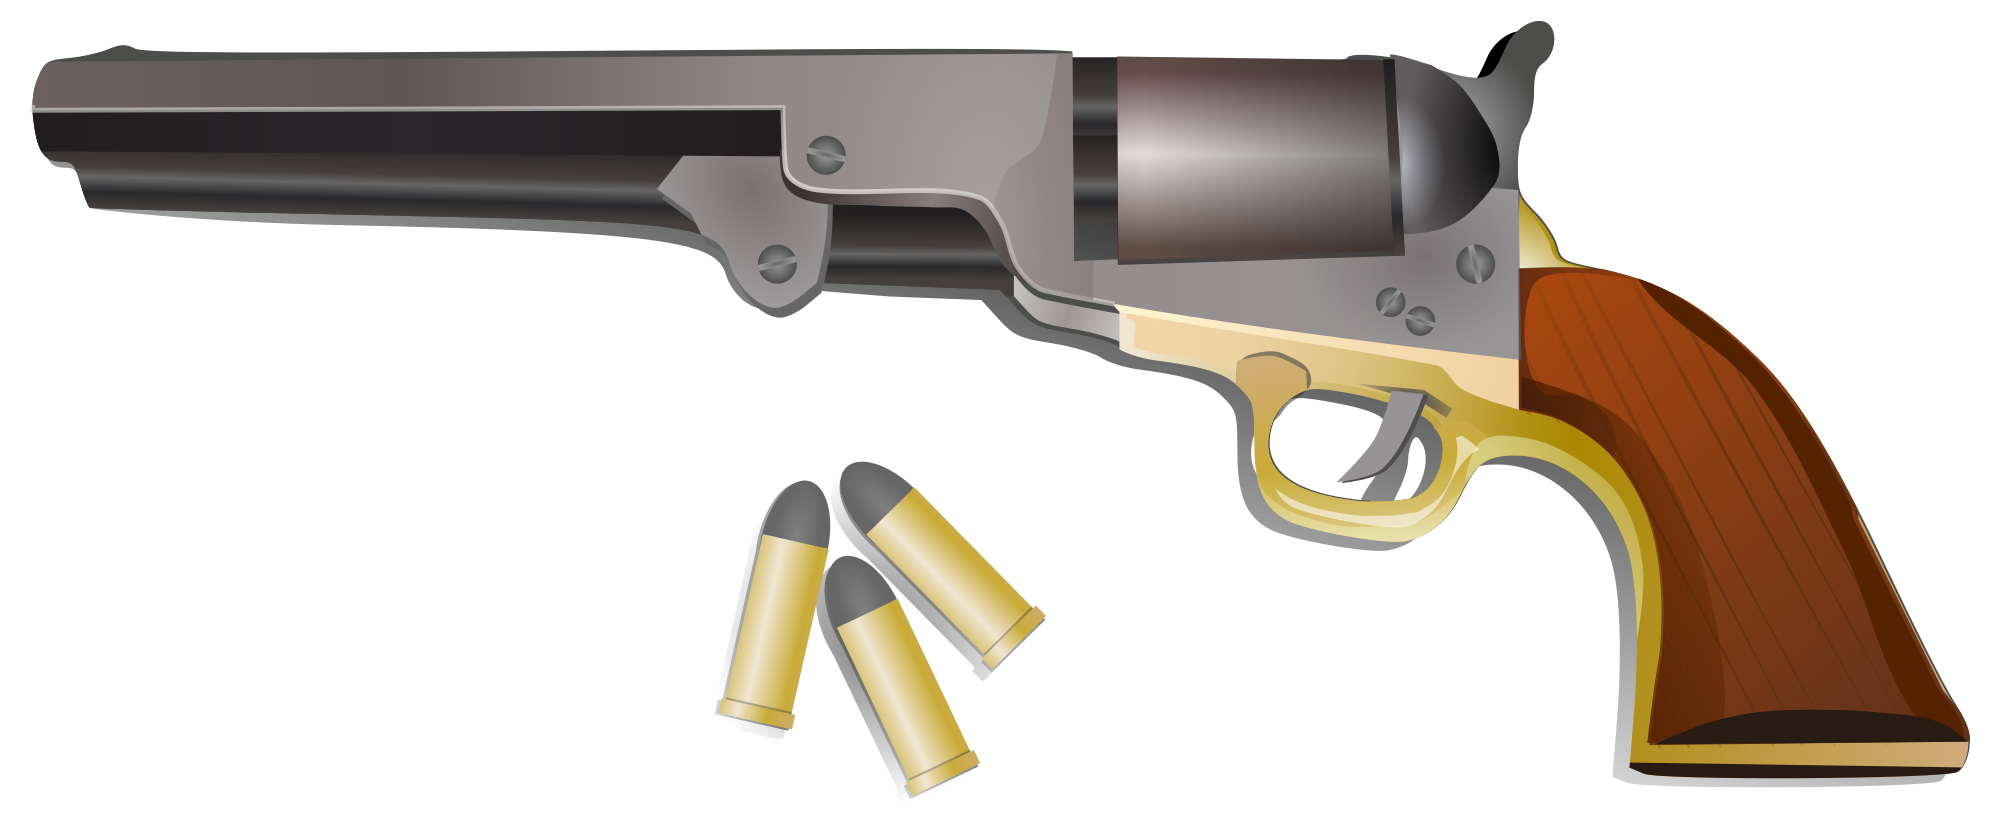 File svg wikimedia commons. Pistol clipart peacemaker colt